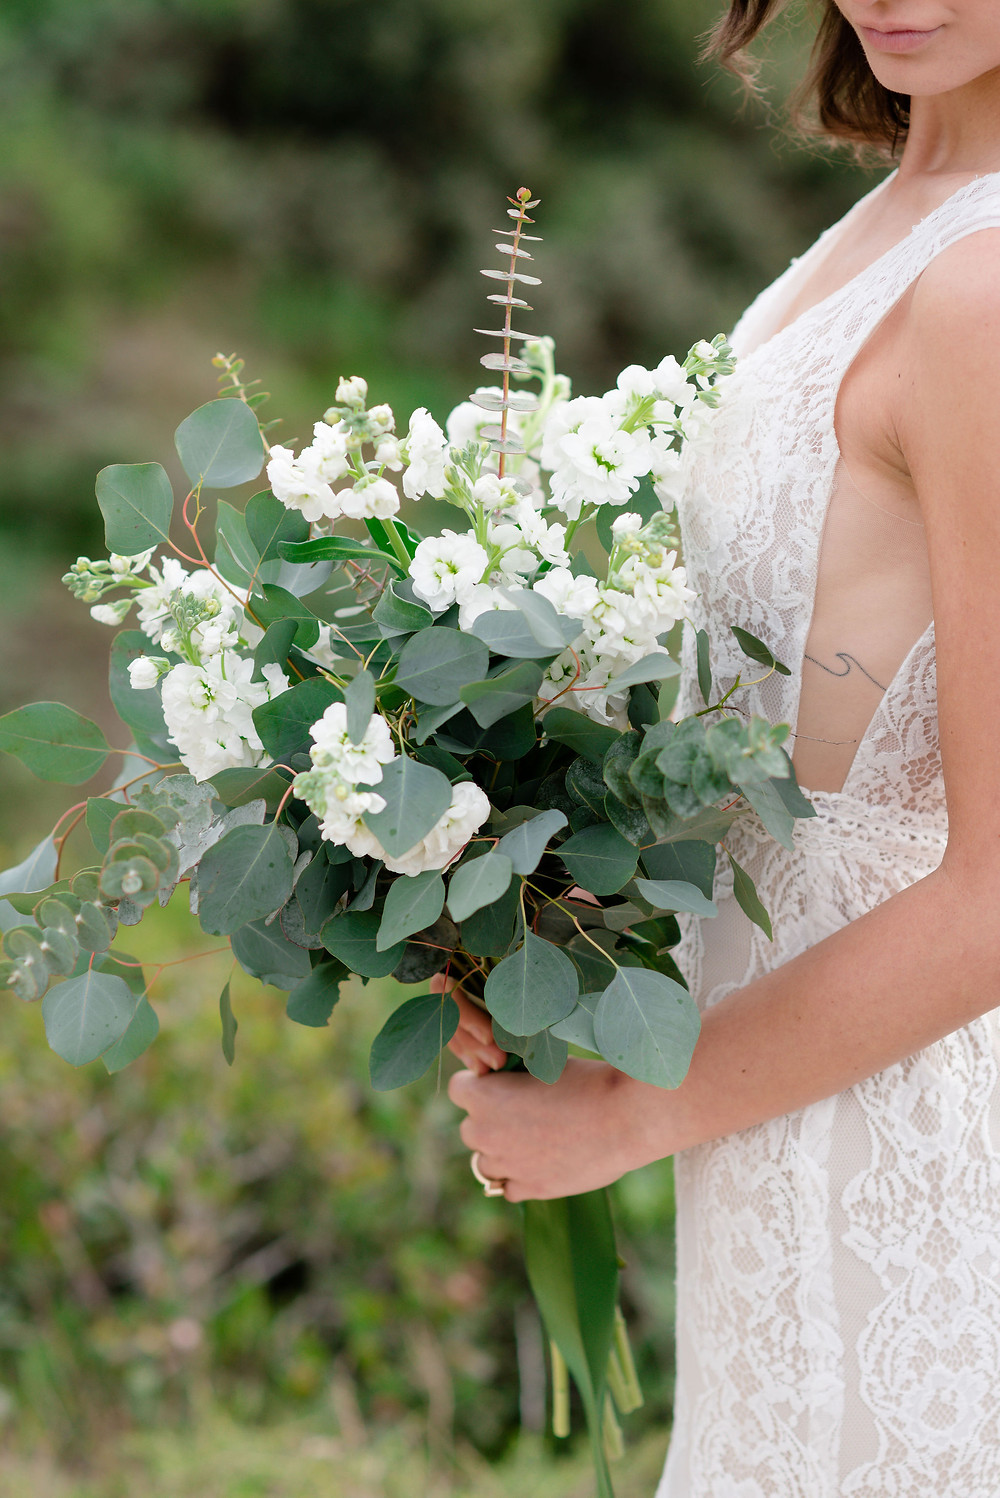 DIY green and white bridal bouquet from trader joes